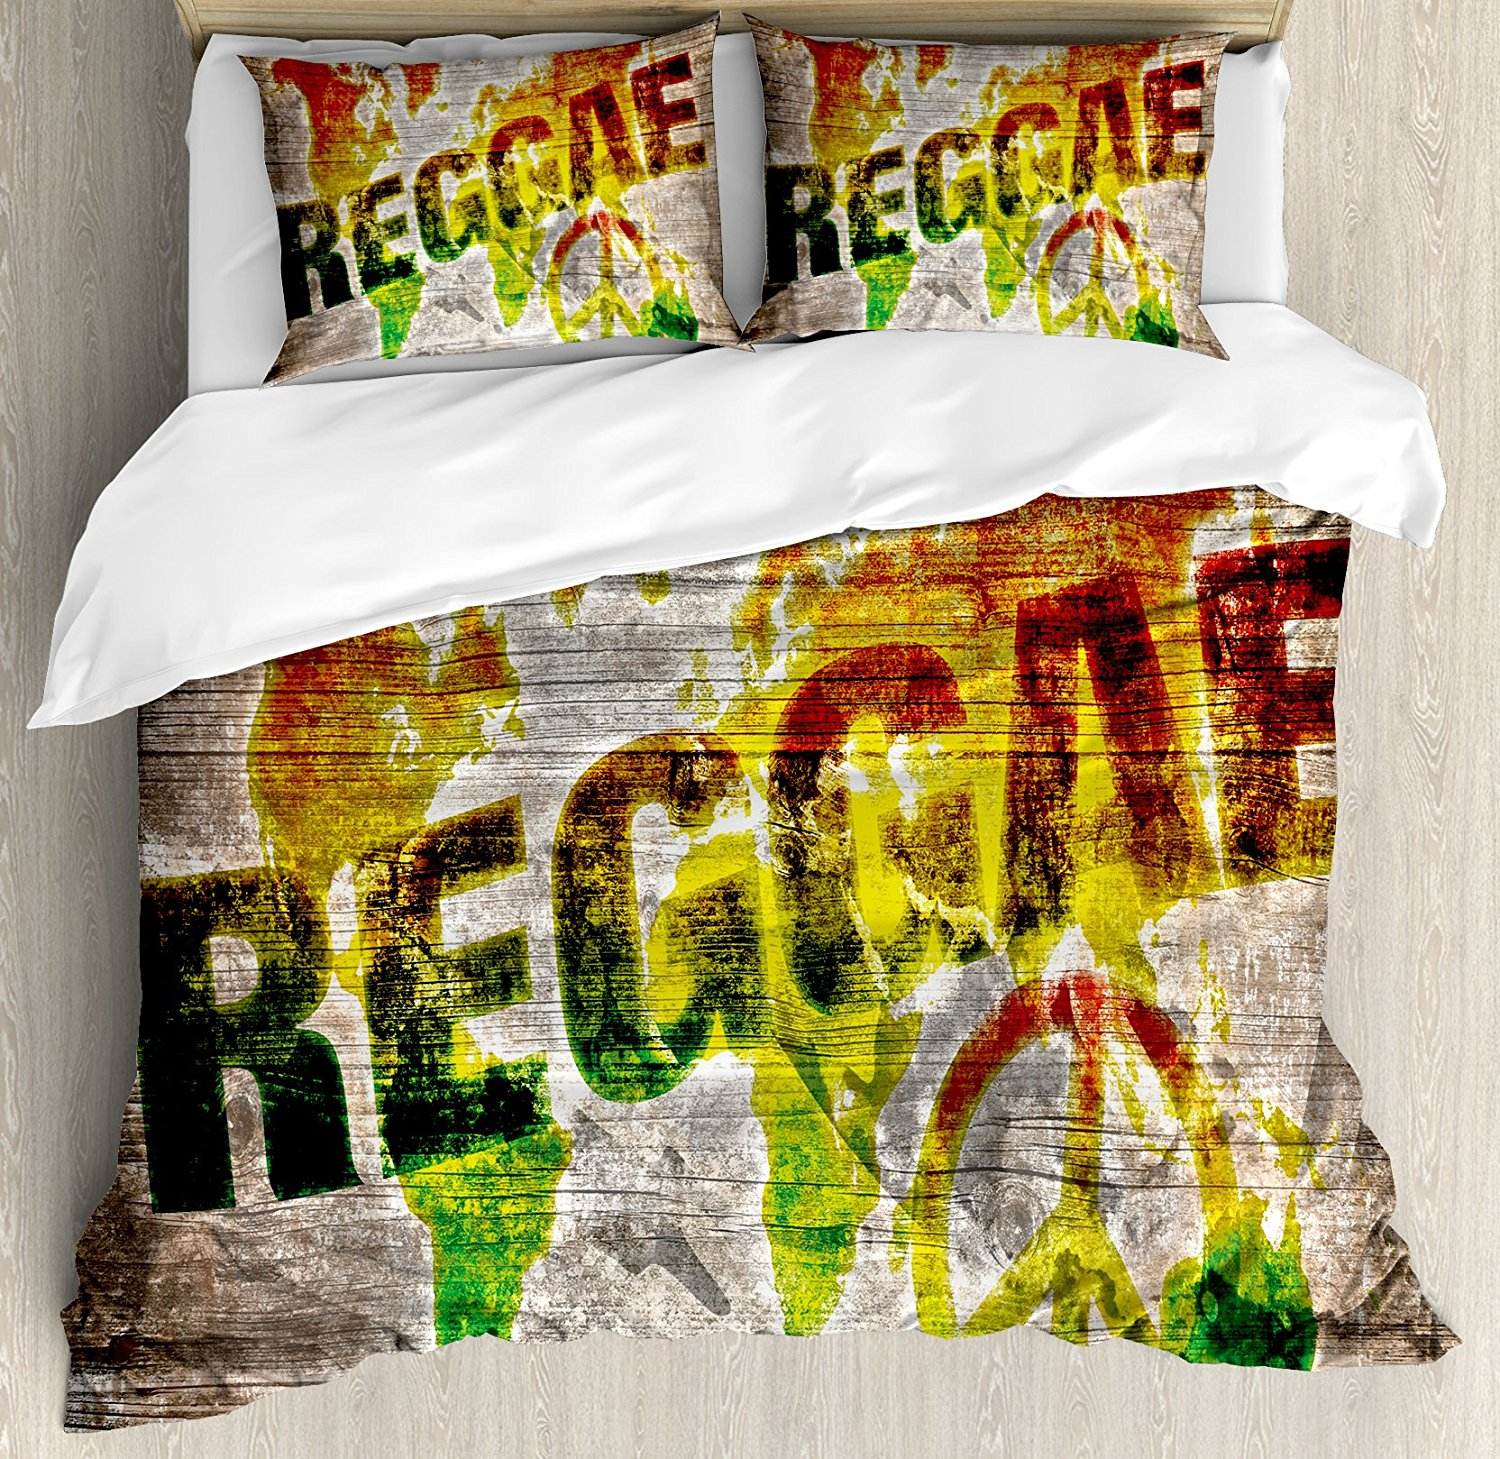 Rasta duvet cover set world map on plaques with reggae lettering and rasta duvet cover set world map on plaques with reggae lettering and peace symbol decorative 4 piece bedding set in bedding sets from home garden on gumiabroncs Choice Image